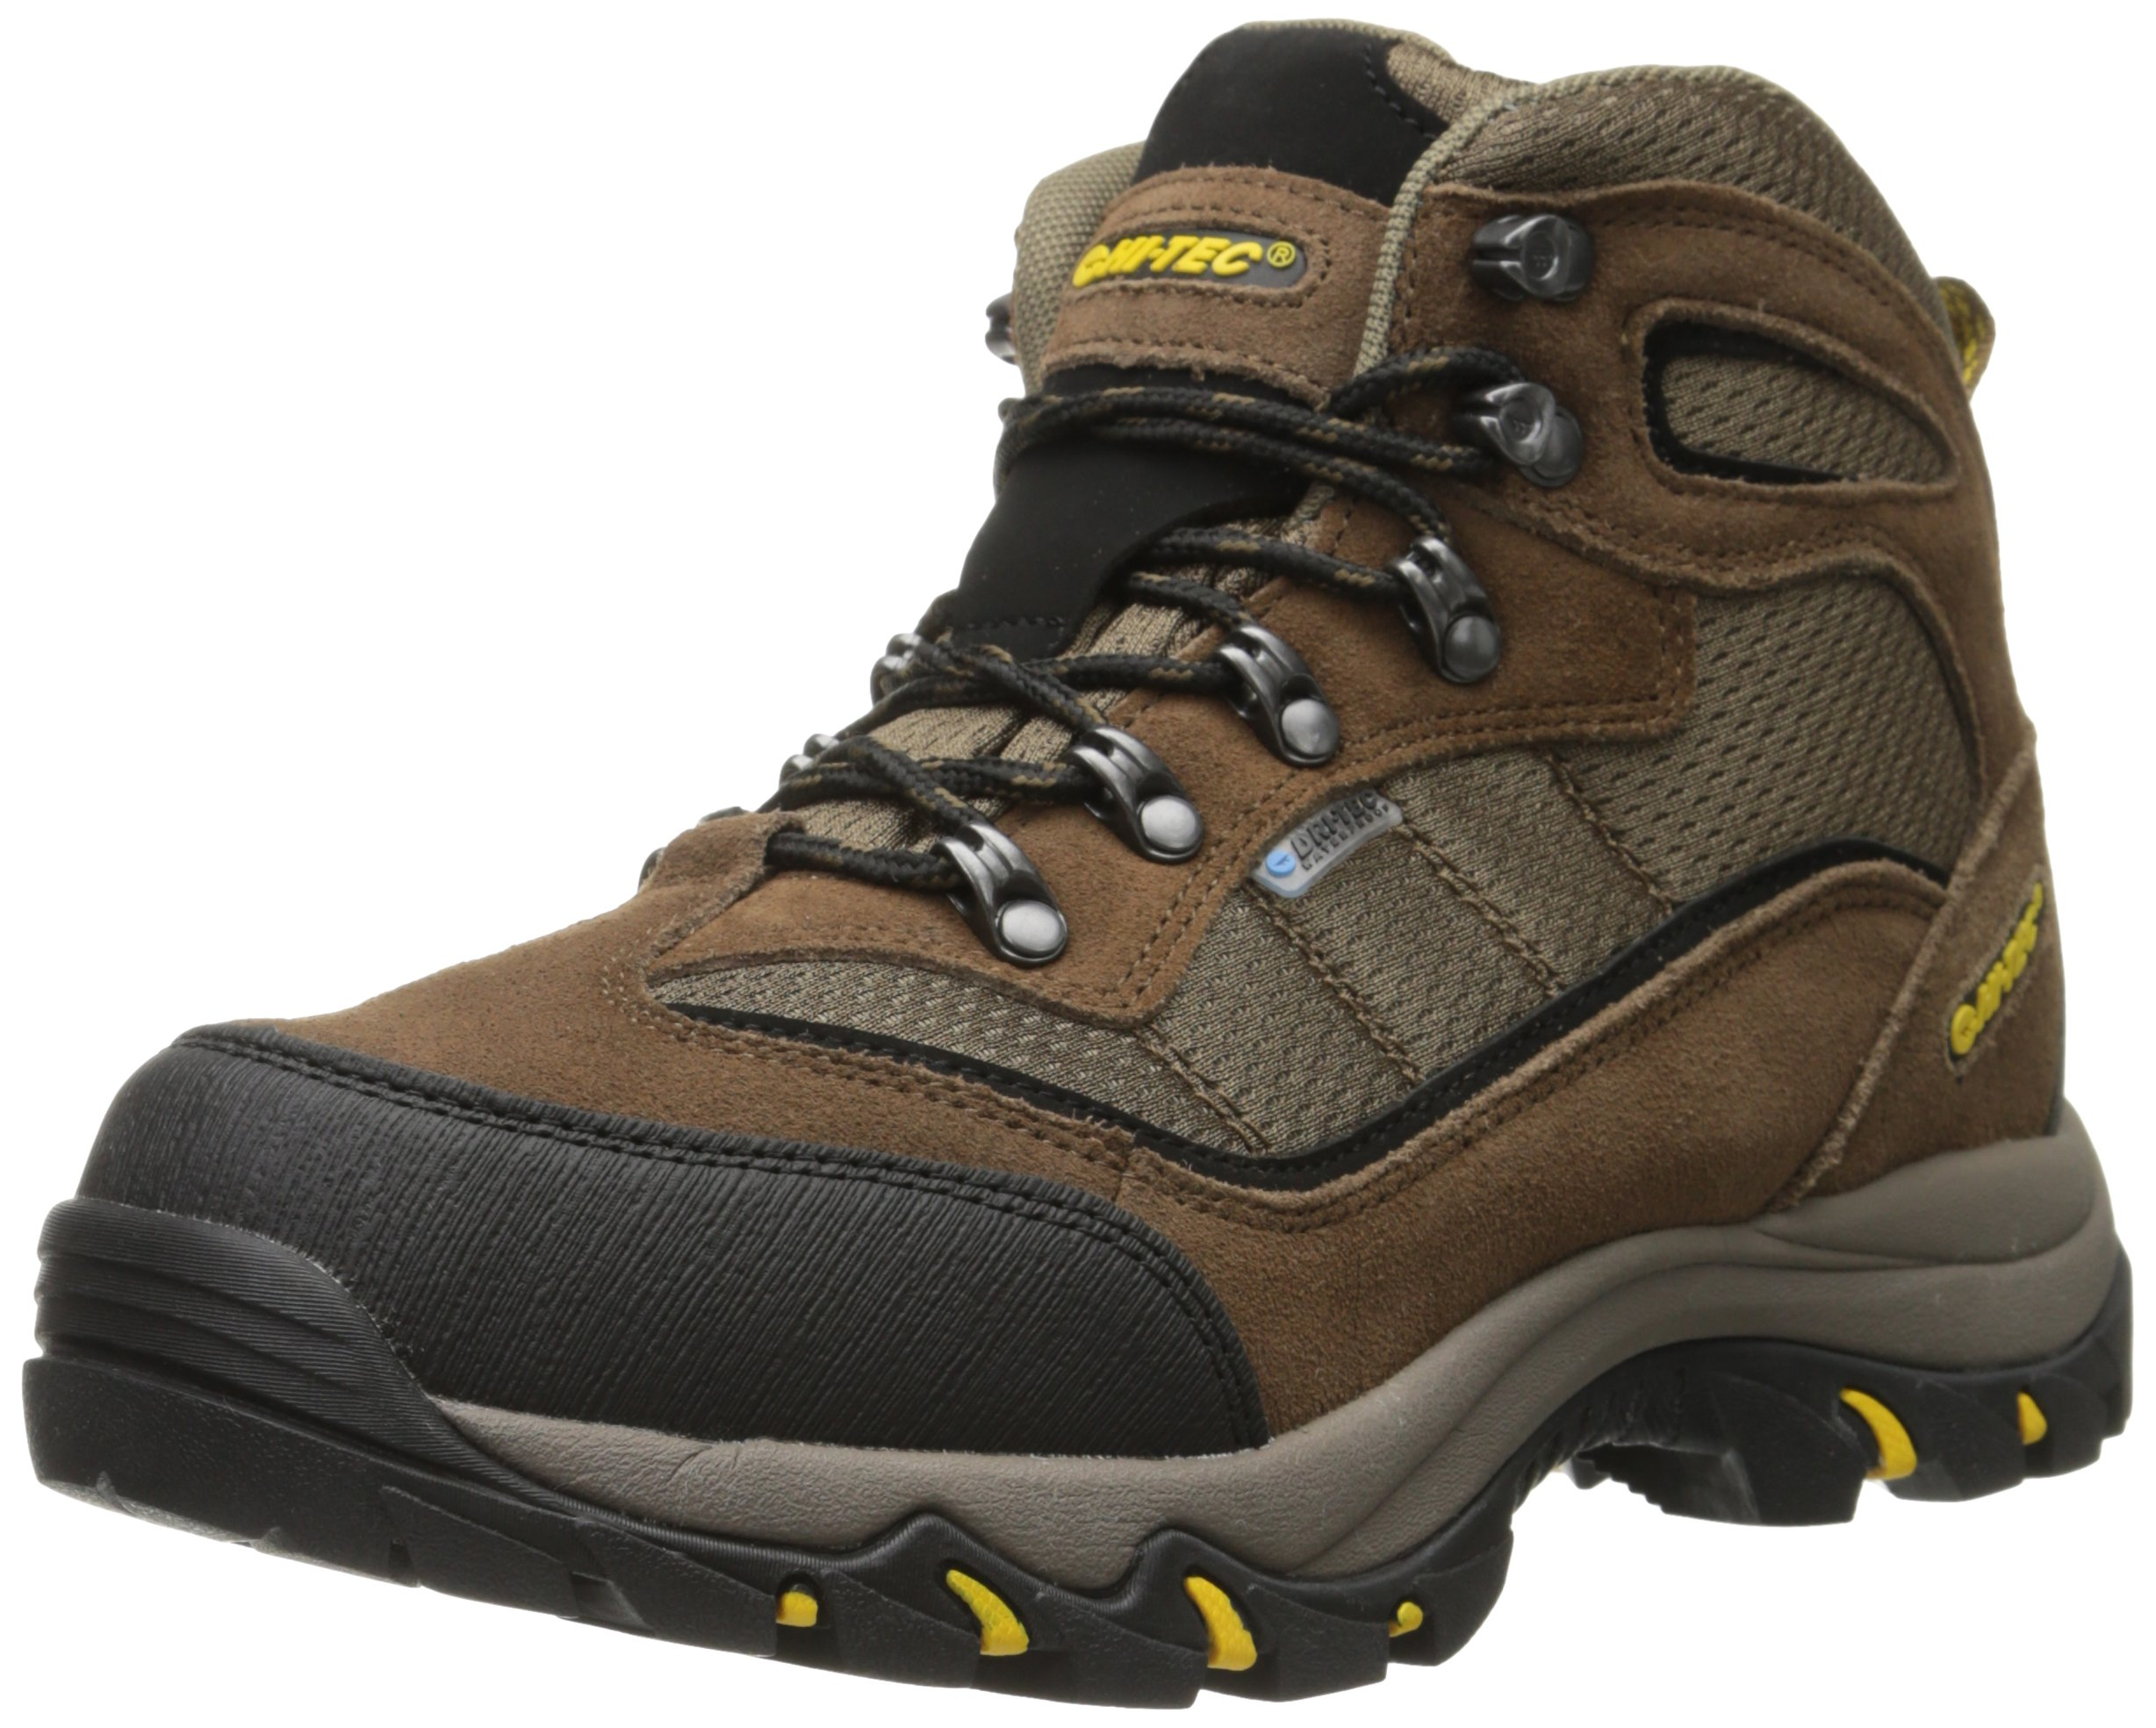 Hi-Tec Men's Skamania Mid Waterproof Hiking Boot, Brown/Gold,11.5 M US